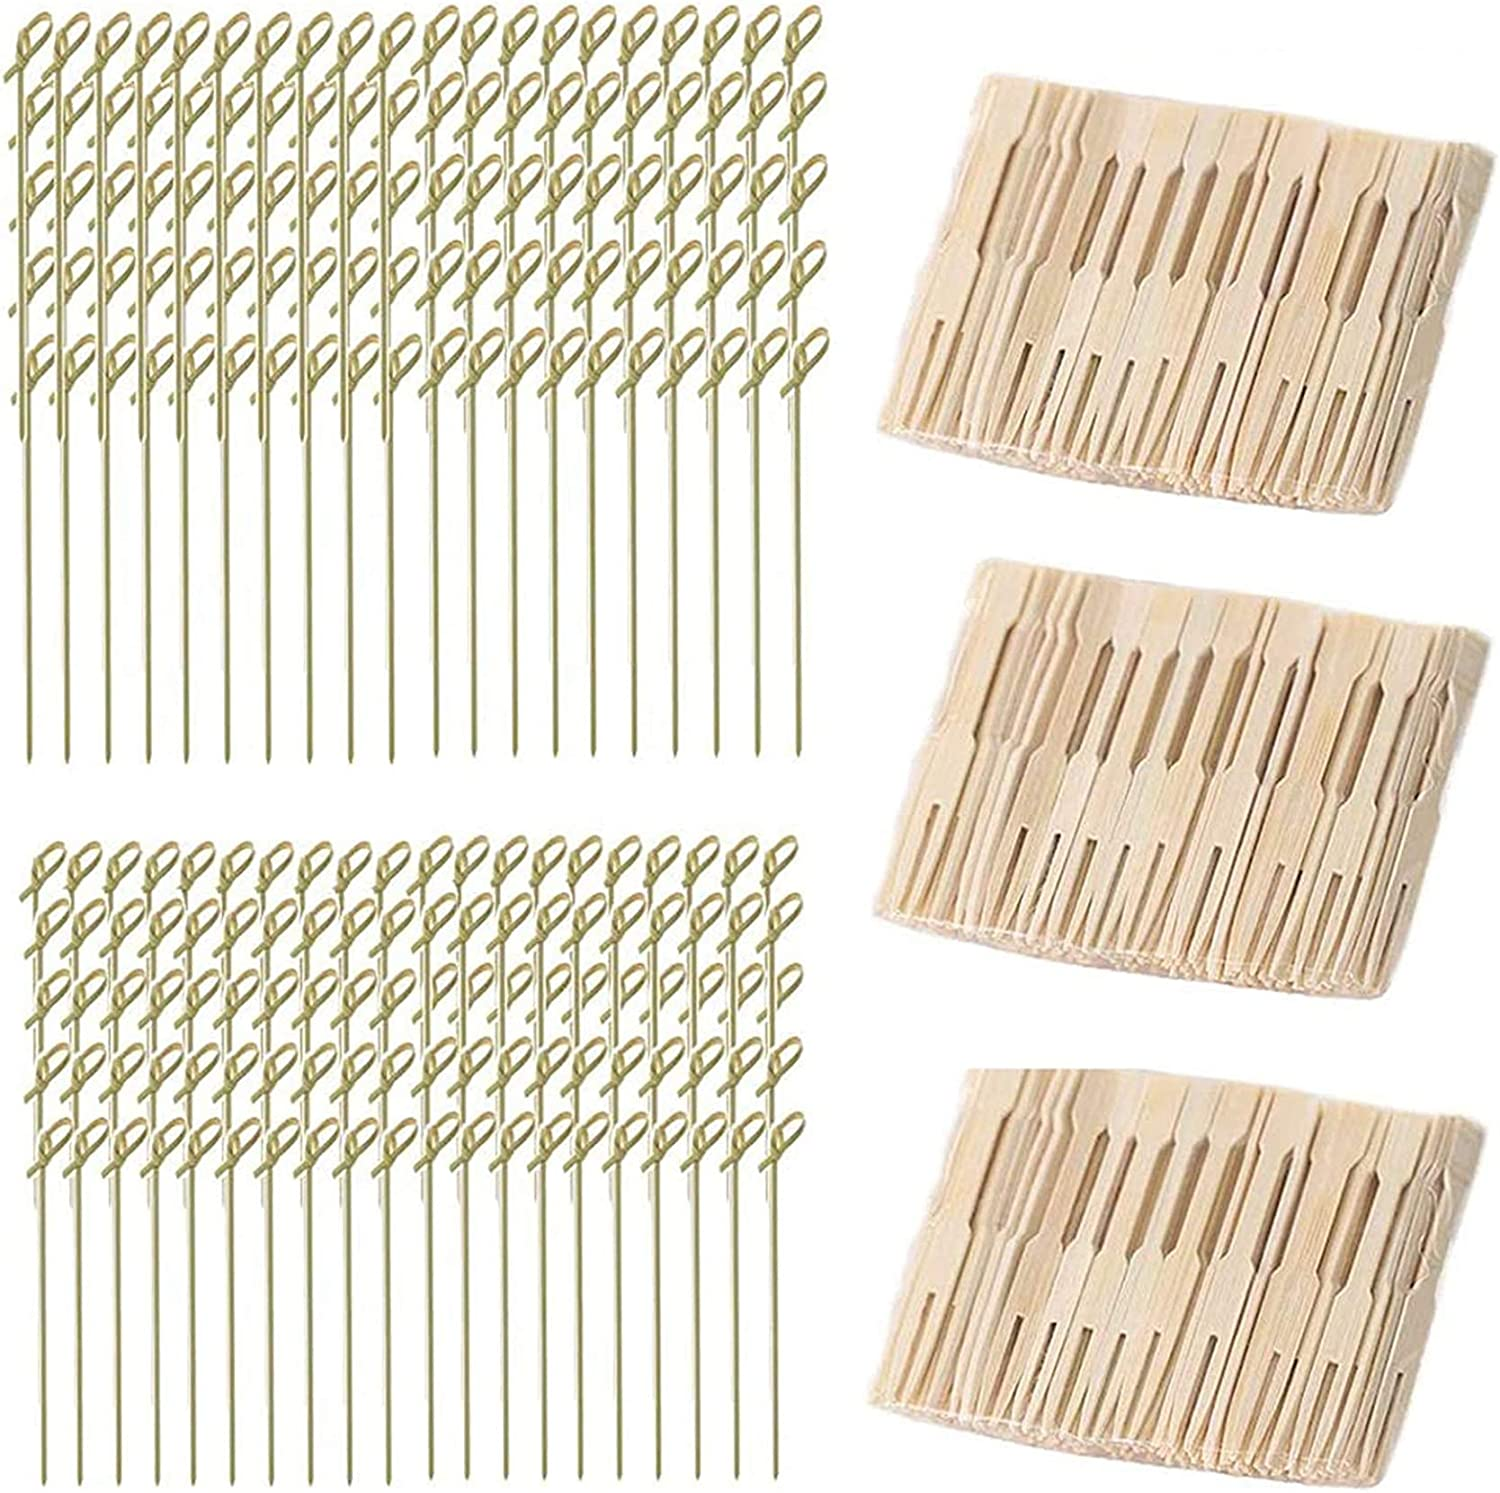 Bamboo Food Picks Cocktail Forks Set, 200 Pcs Appetizer Picks & 300 Pcs Cocktail Picks for Cheese Party Banquet Buffet & Catering | Natural Bamboo Party Food Skewers for Appetizer Cocktail Fruit